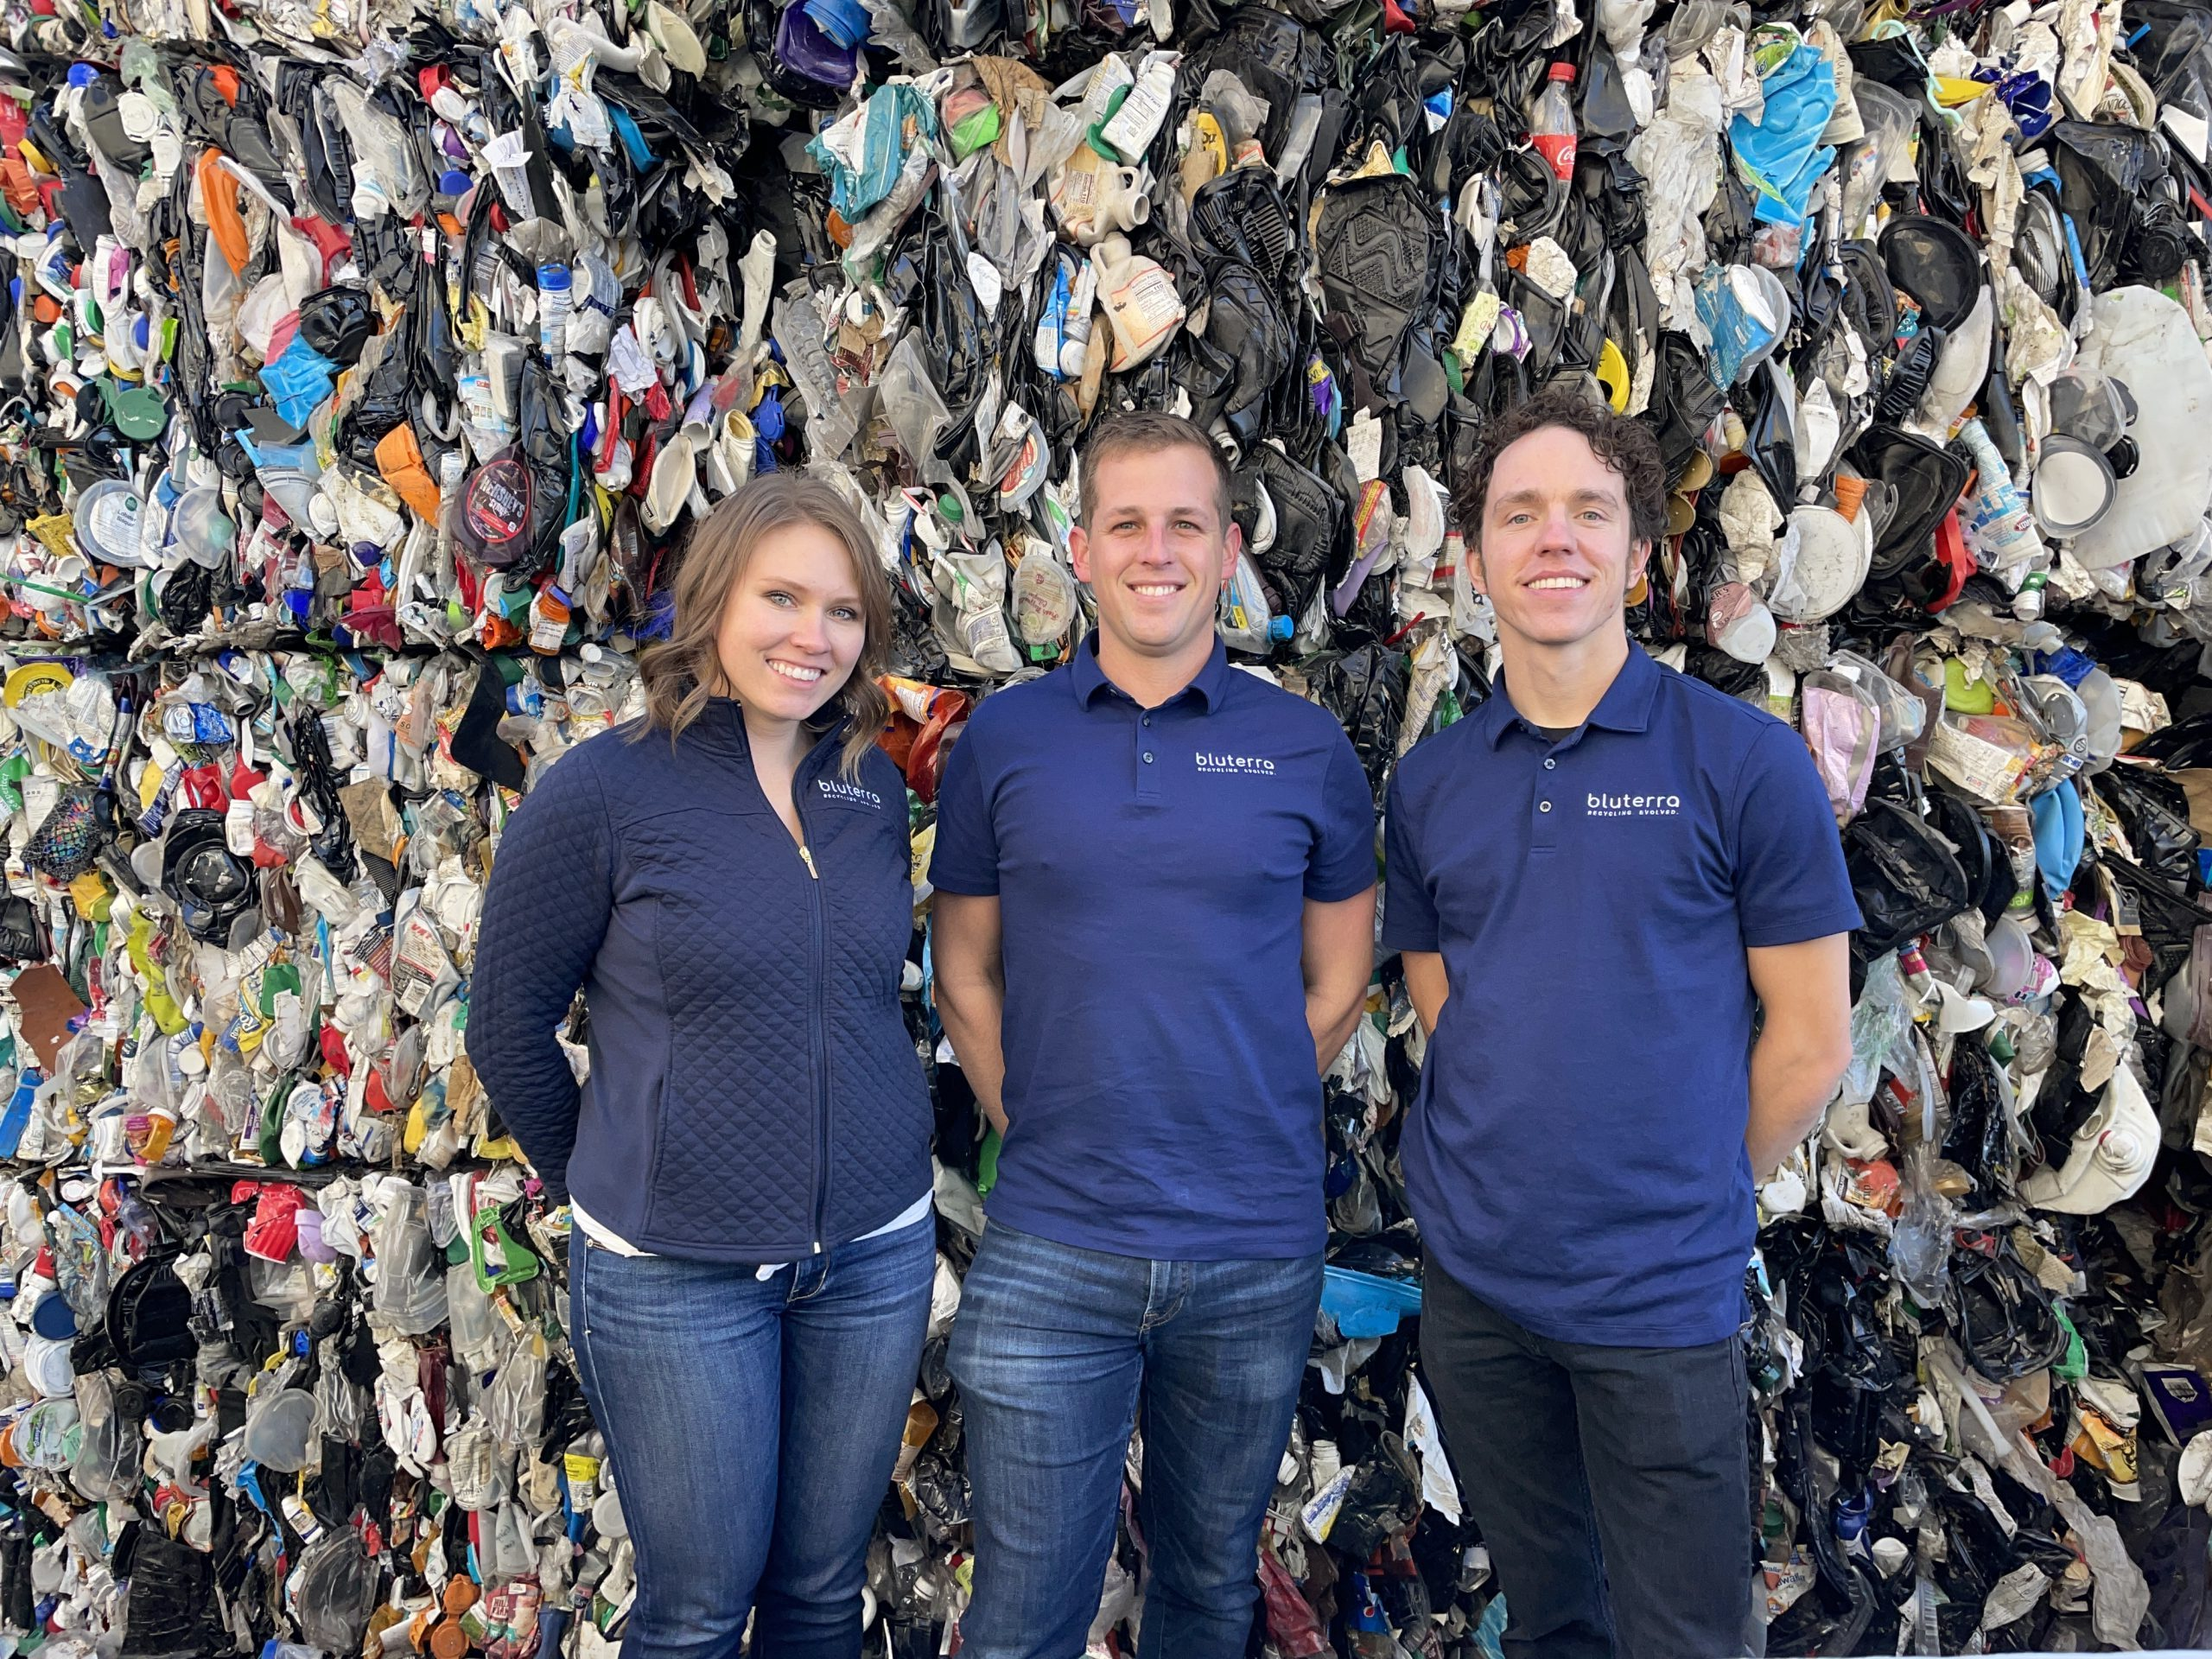 """Company's A.I. Aims to Make Recycling """"Mindlessly Easy"""""""